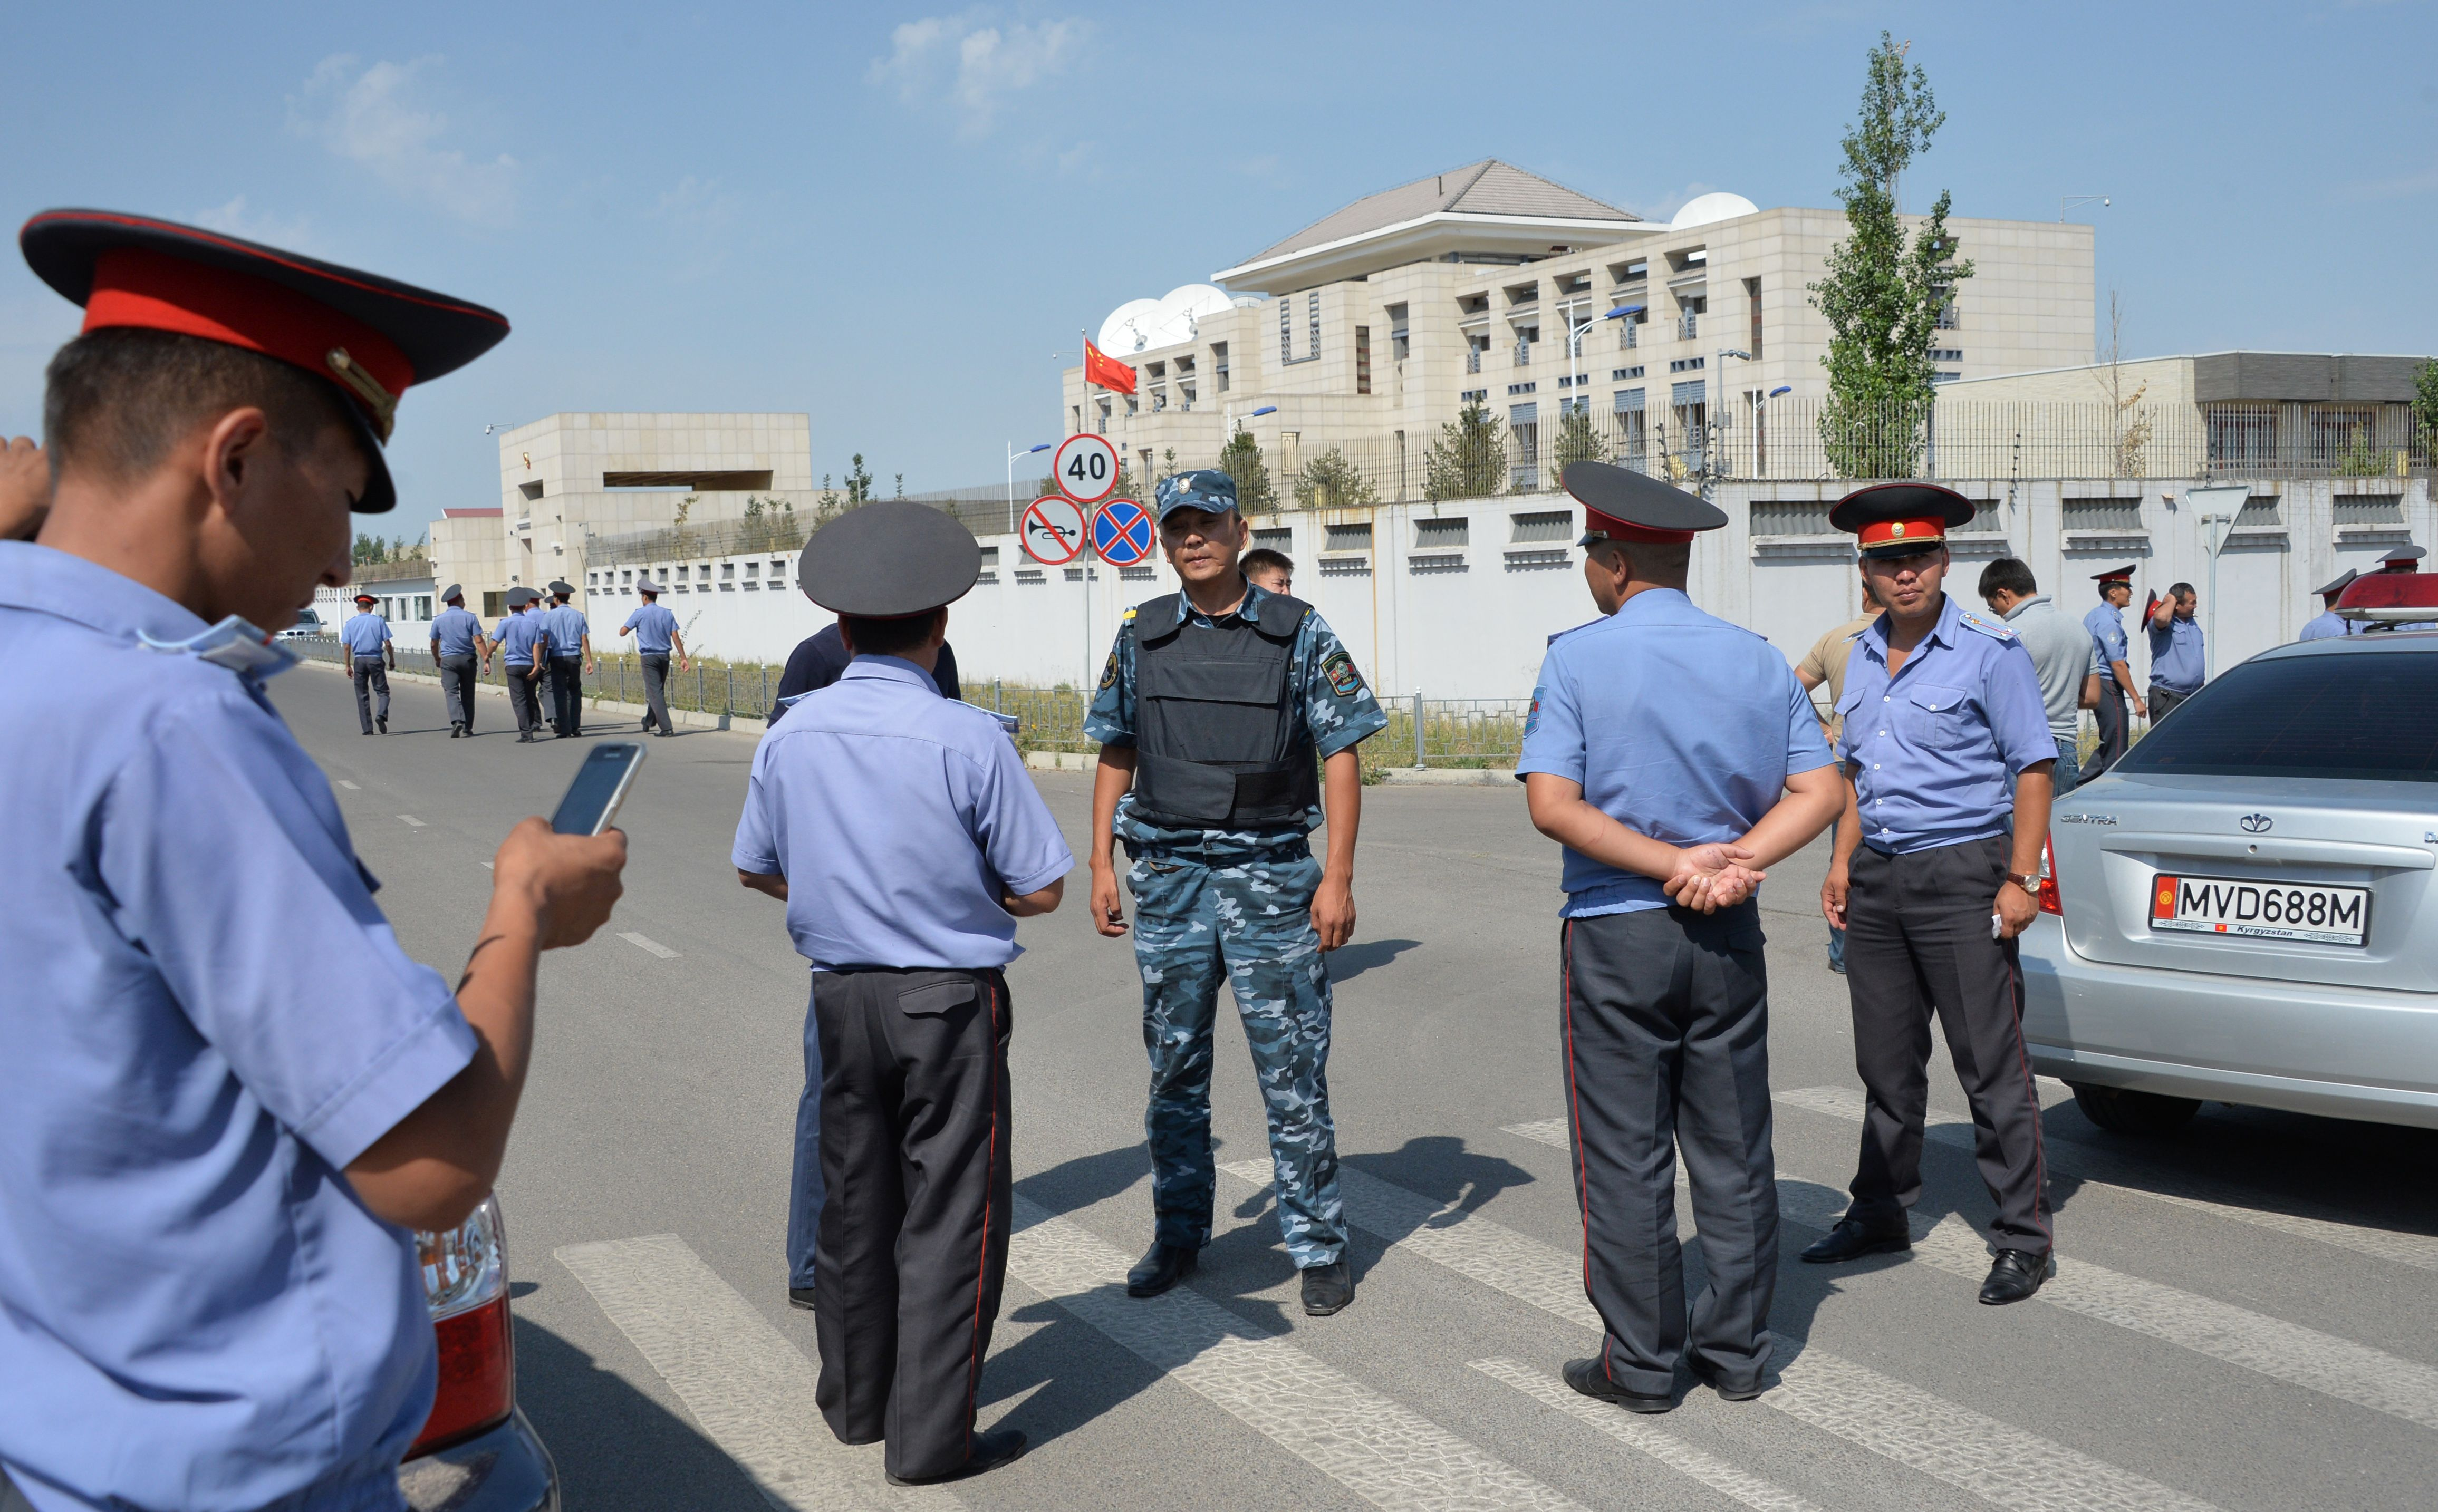 Police officers gather outside the Chinese embassy in Bishkek, Kyrgyzstan, on Aug. 30, 2016. A van driven by a suicide bomber exploded after ramming through a gate.